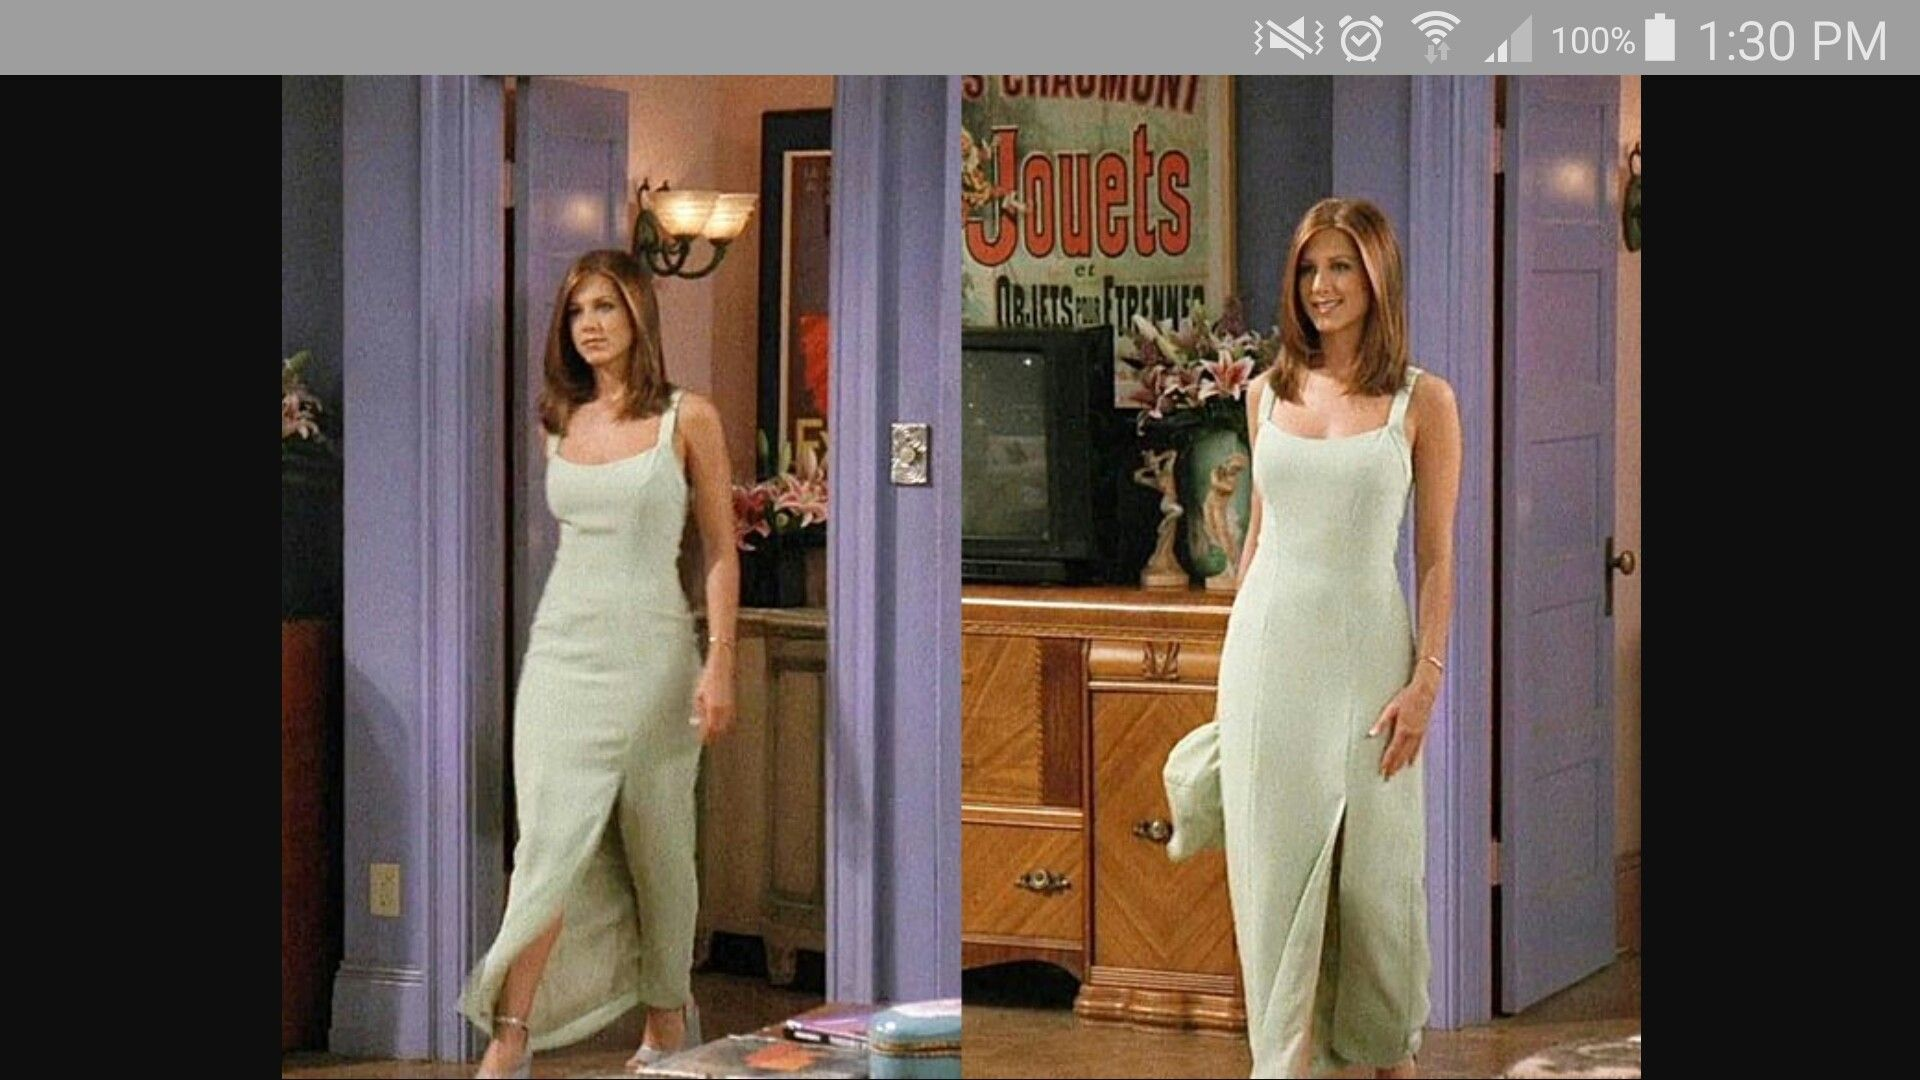 Racheal S Mint Green Dress From Friends Rachel Green Outfits 90s Fashion Outfits 90s Inspired Outfits [ 1080 x 1920 Pixel ]